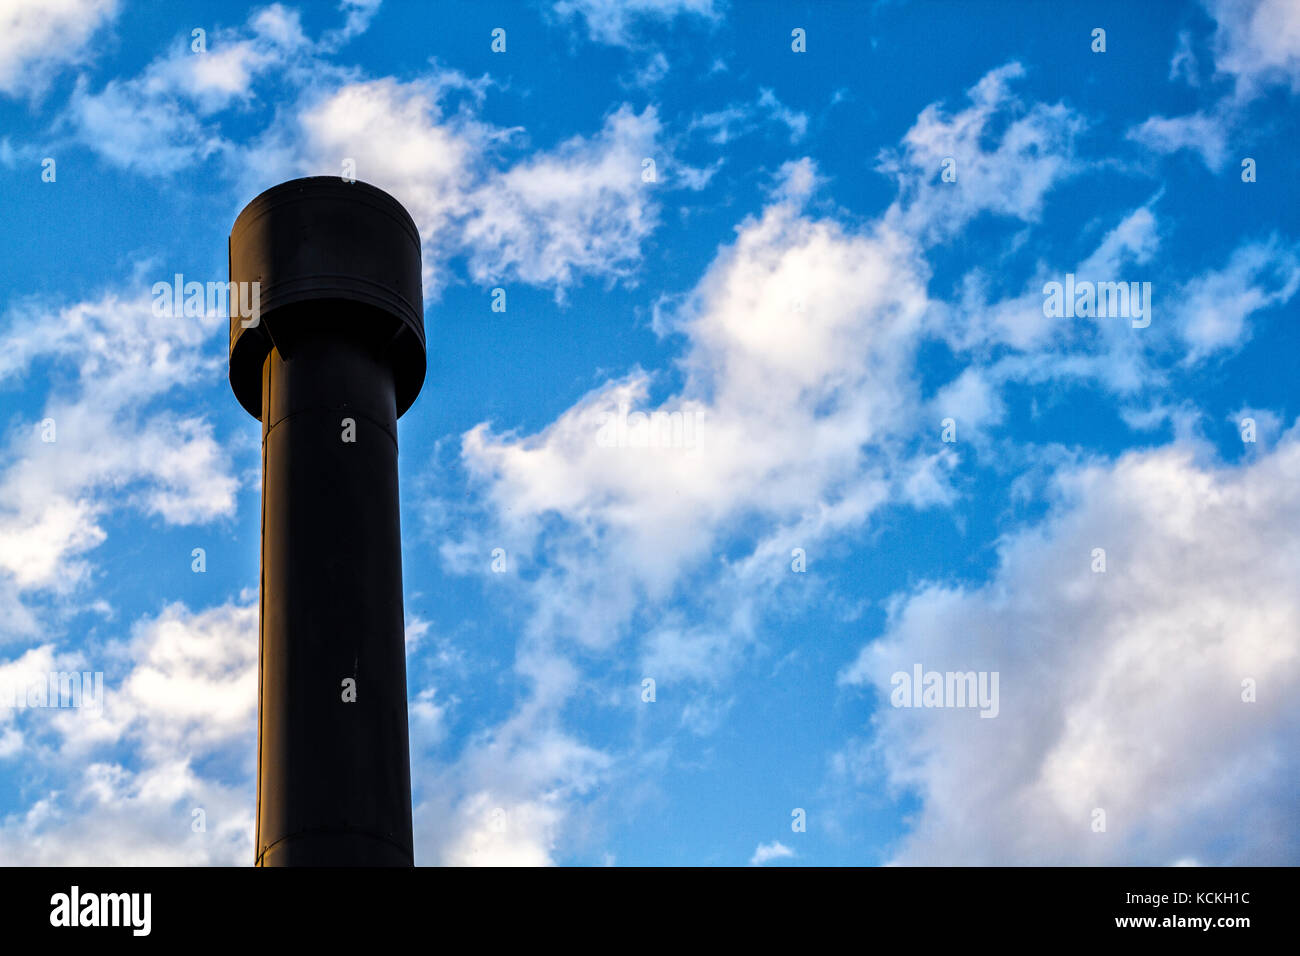 Low angle view of a black chimney against blue sky with some clouds. - Stock Image